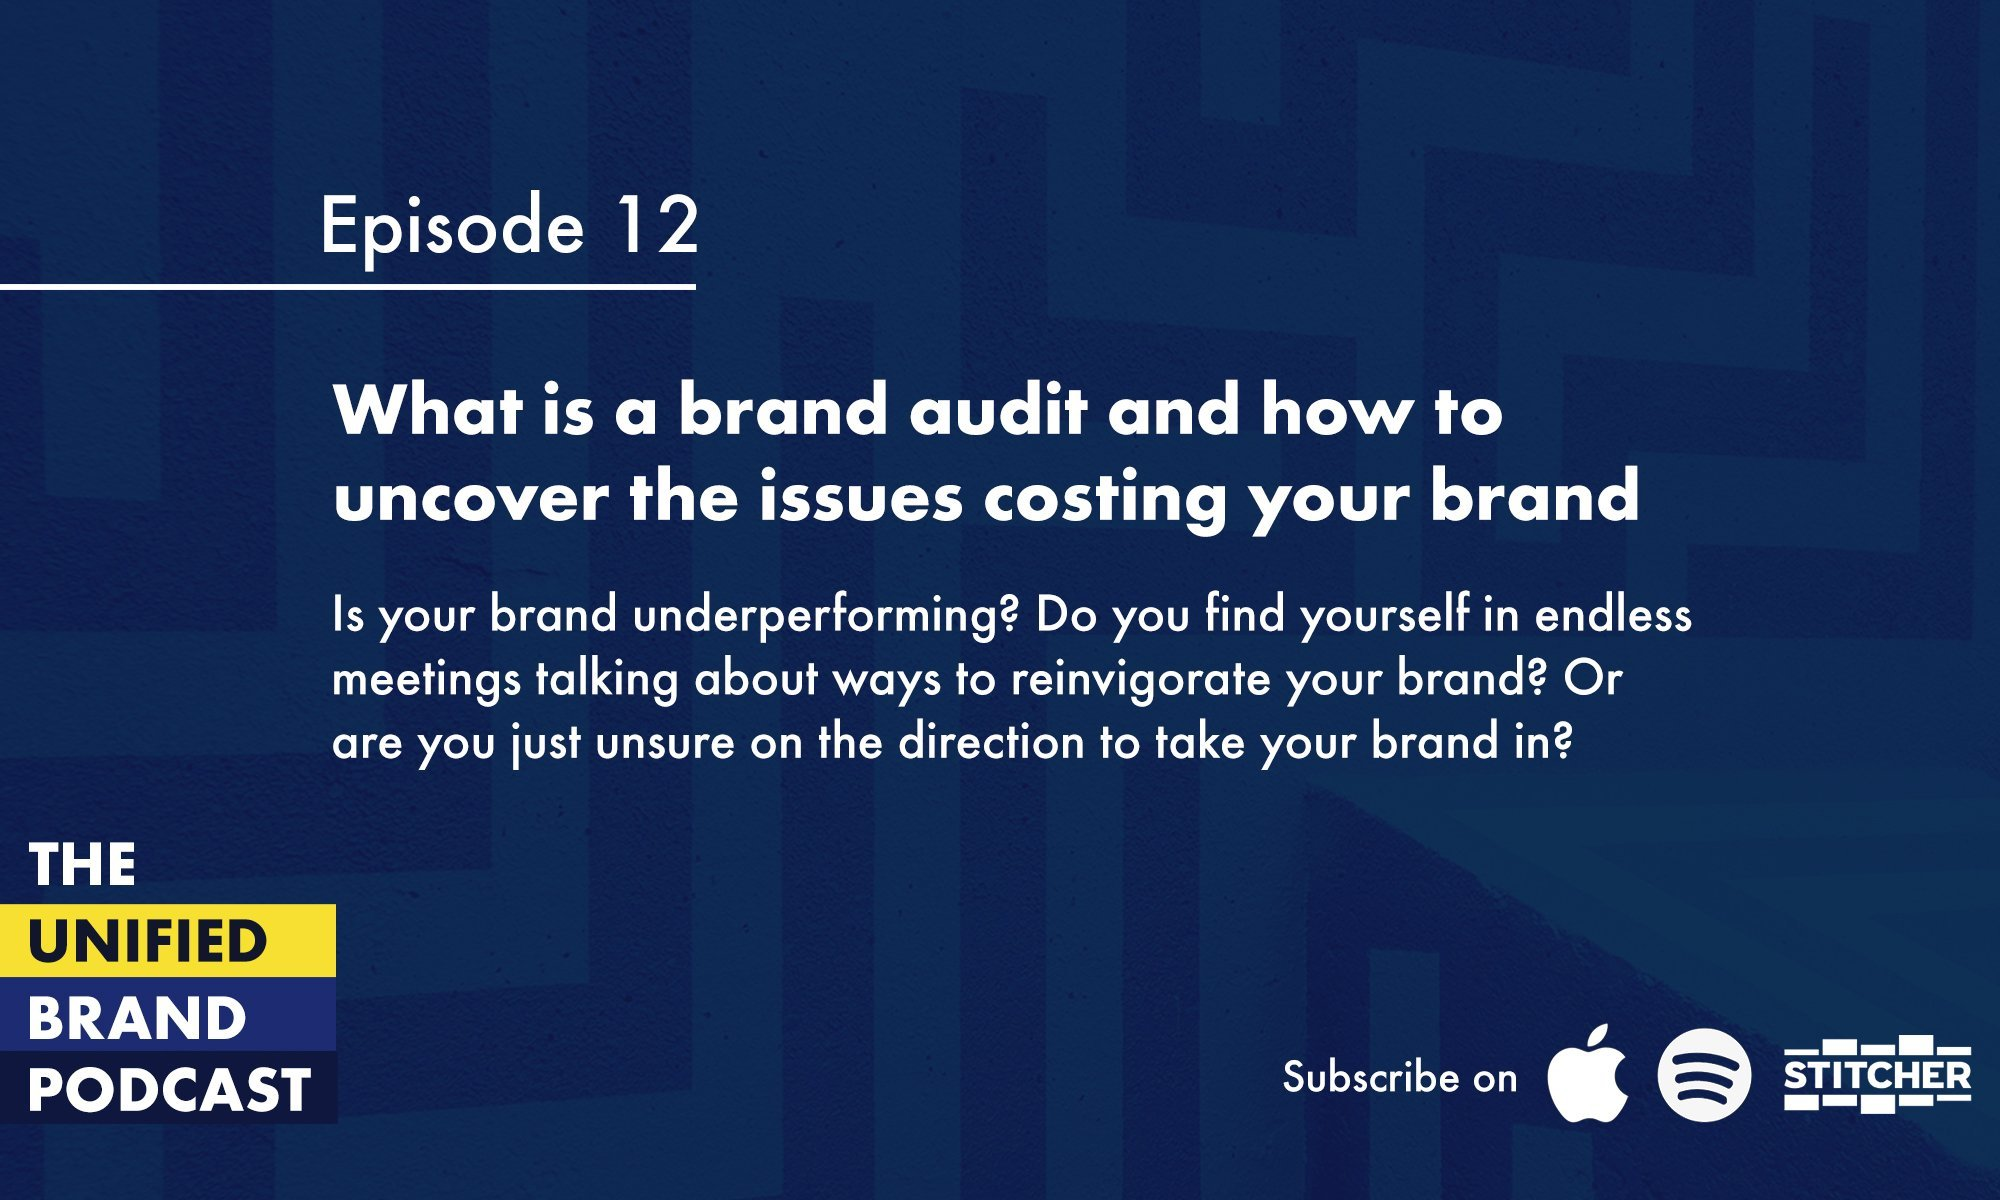 What is a brand audit and how to uncover the issues costing your brand